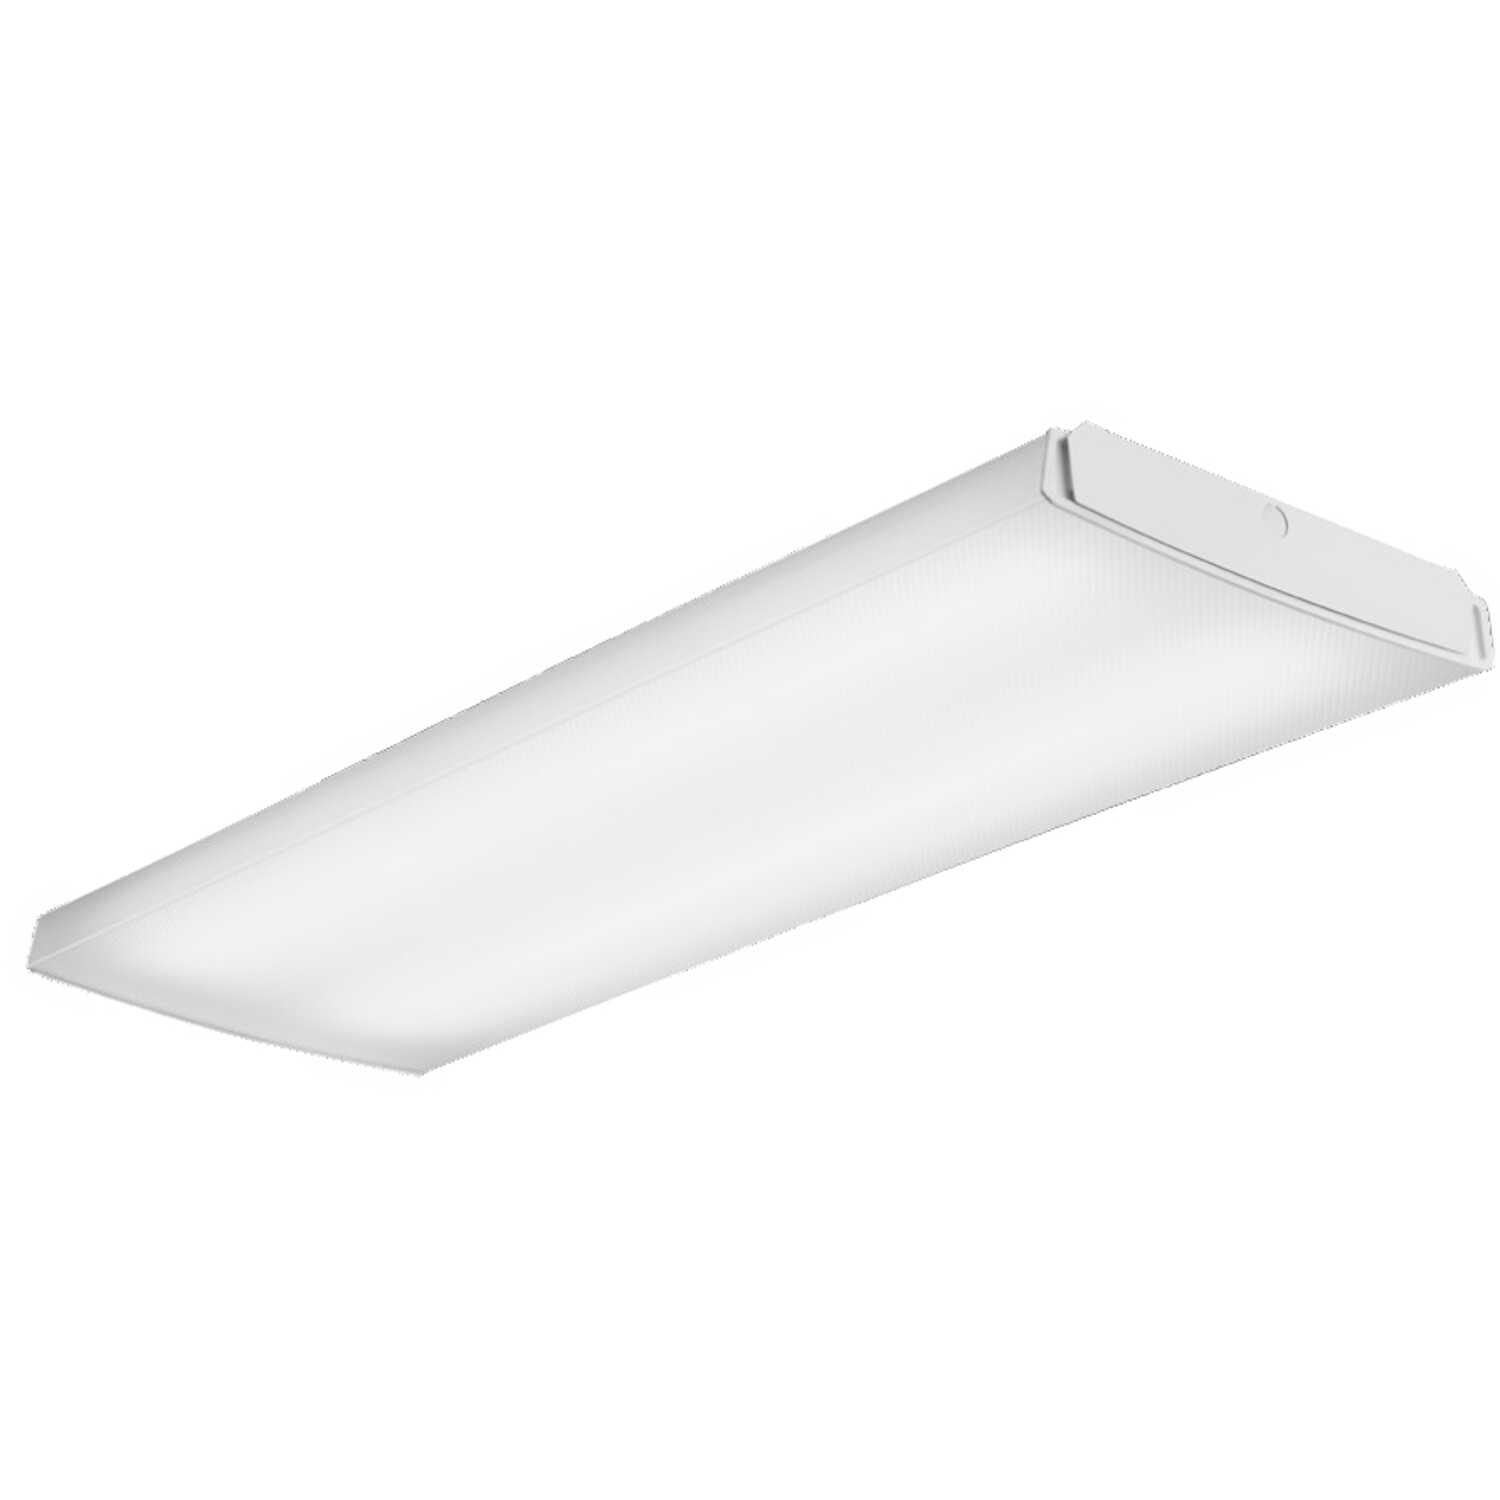 Lithonia Lighting  LB  LED Ceiling Light Fixture